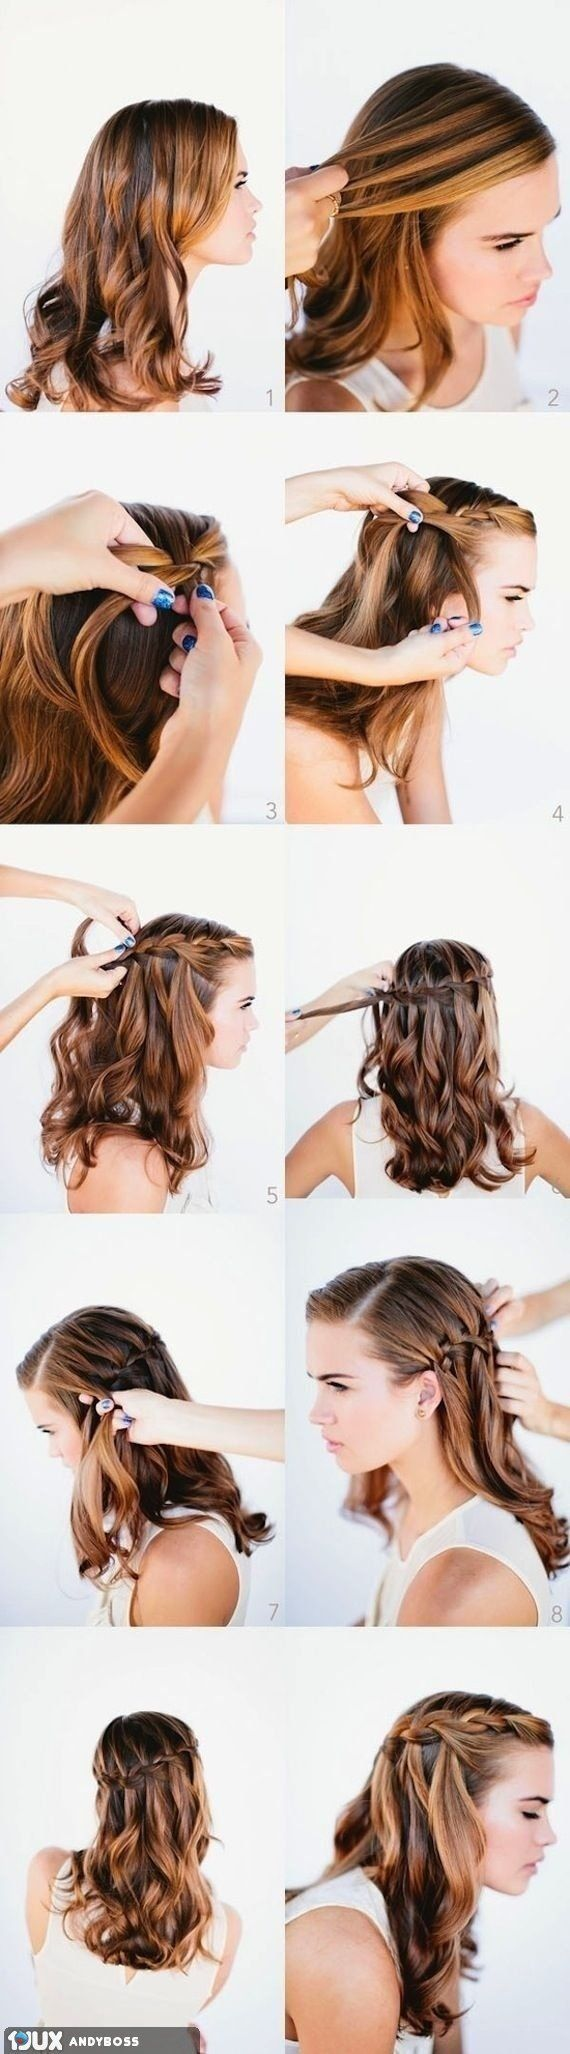 Simple Hairstyle Tutorial – Beauty